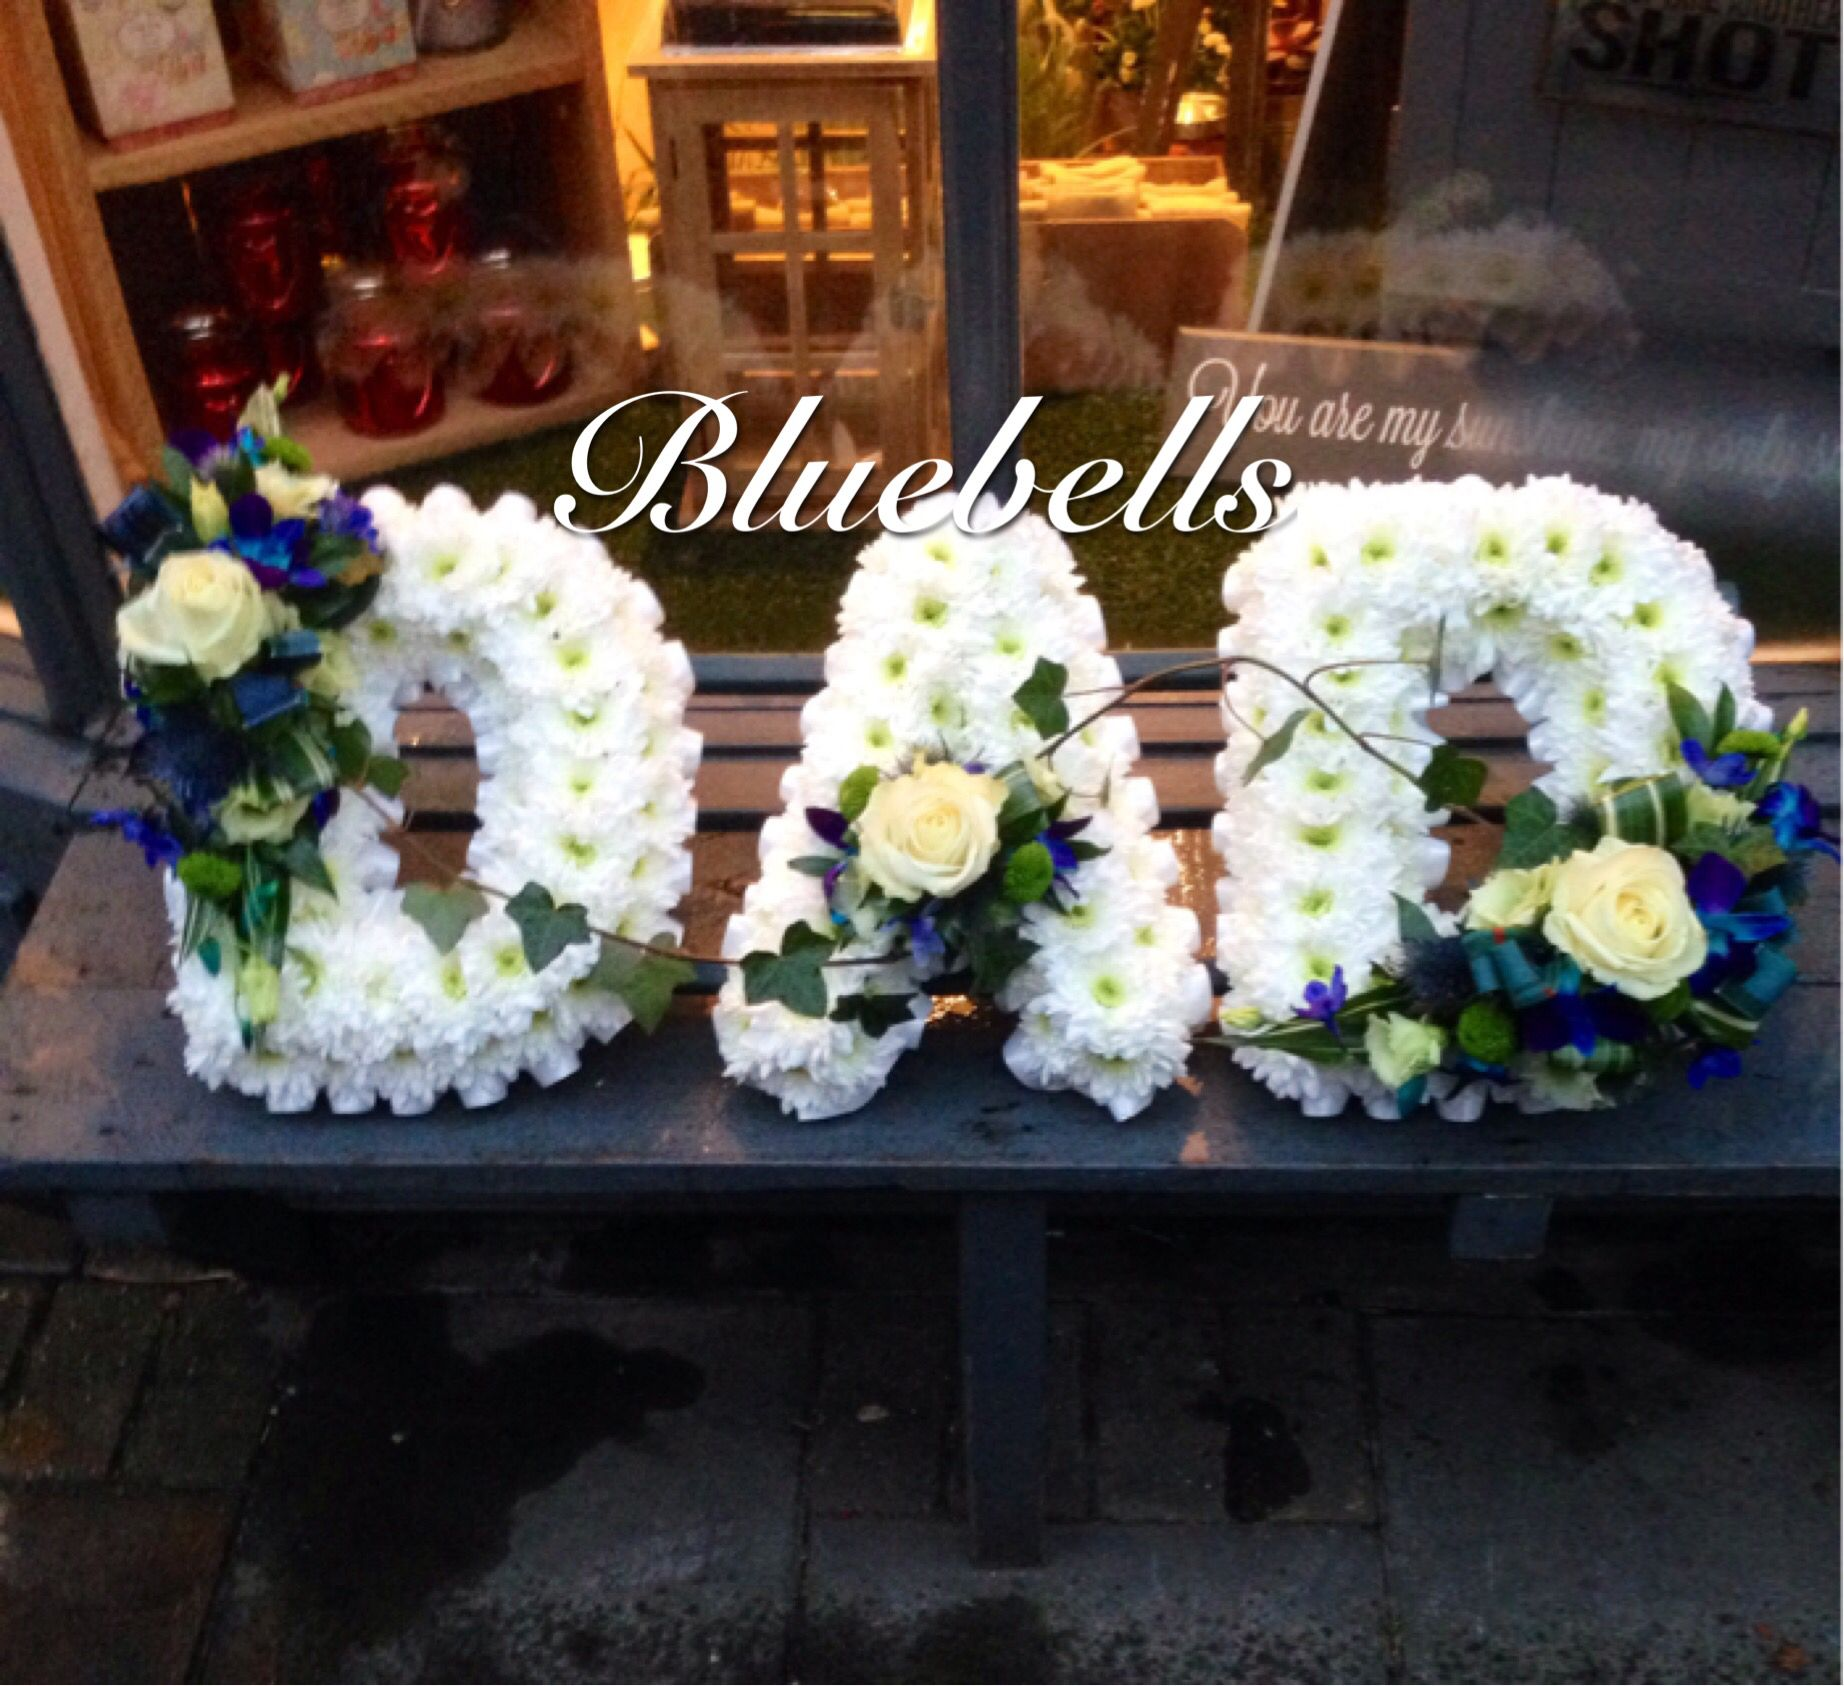 Funeral Flower Names Bluebells Letters Arrangement Pinterest